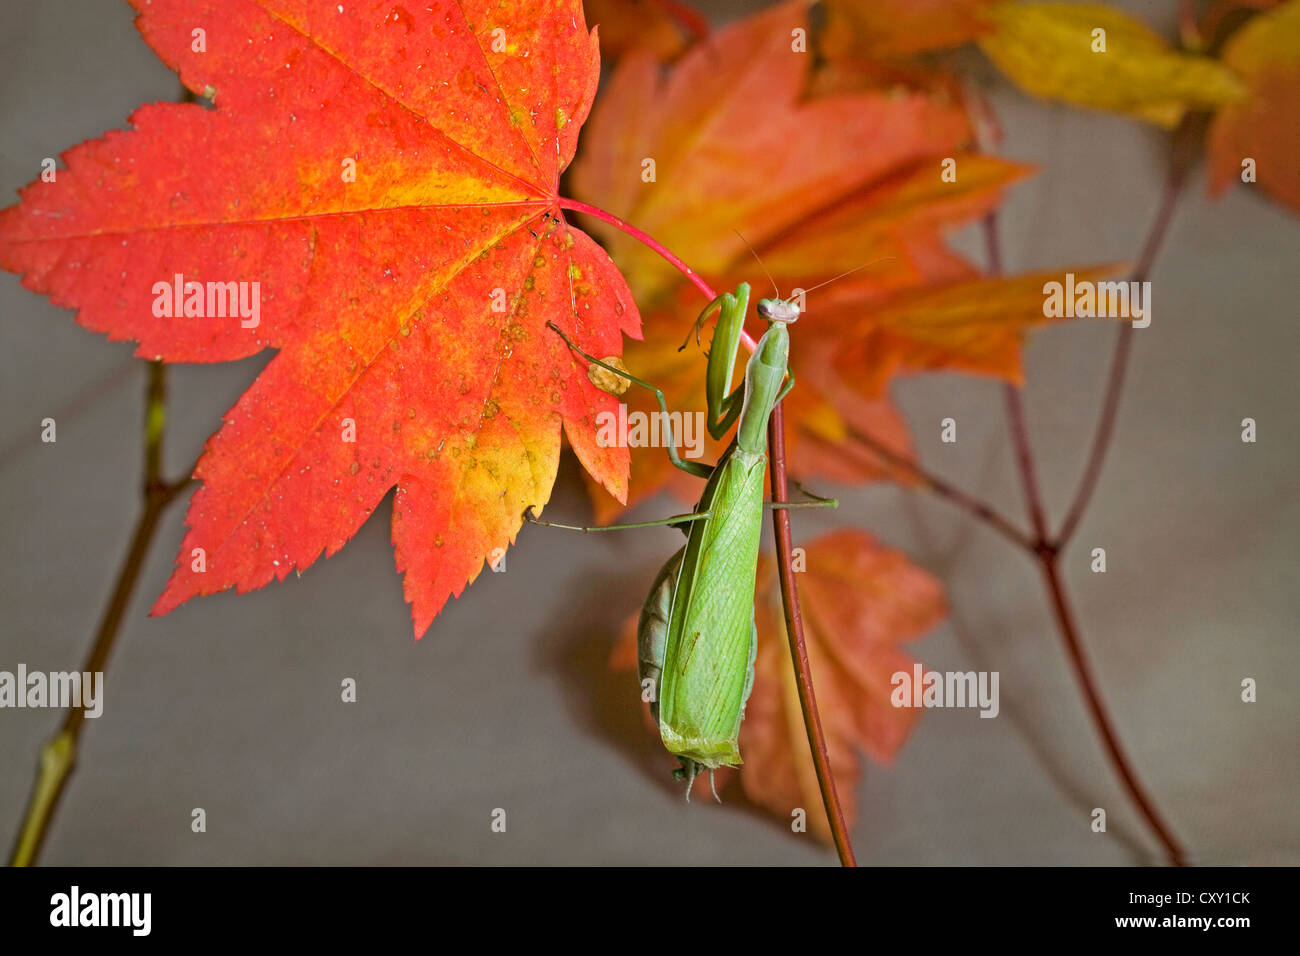 A praying mantis on an autumn maple leaf - Stock Image